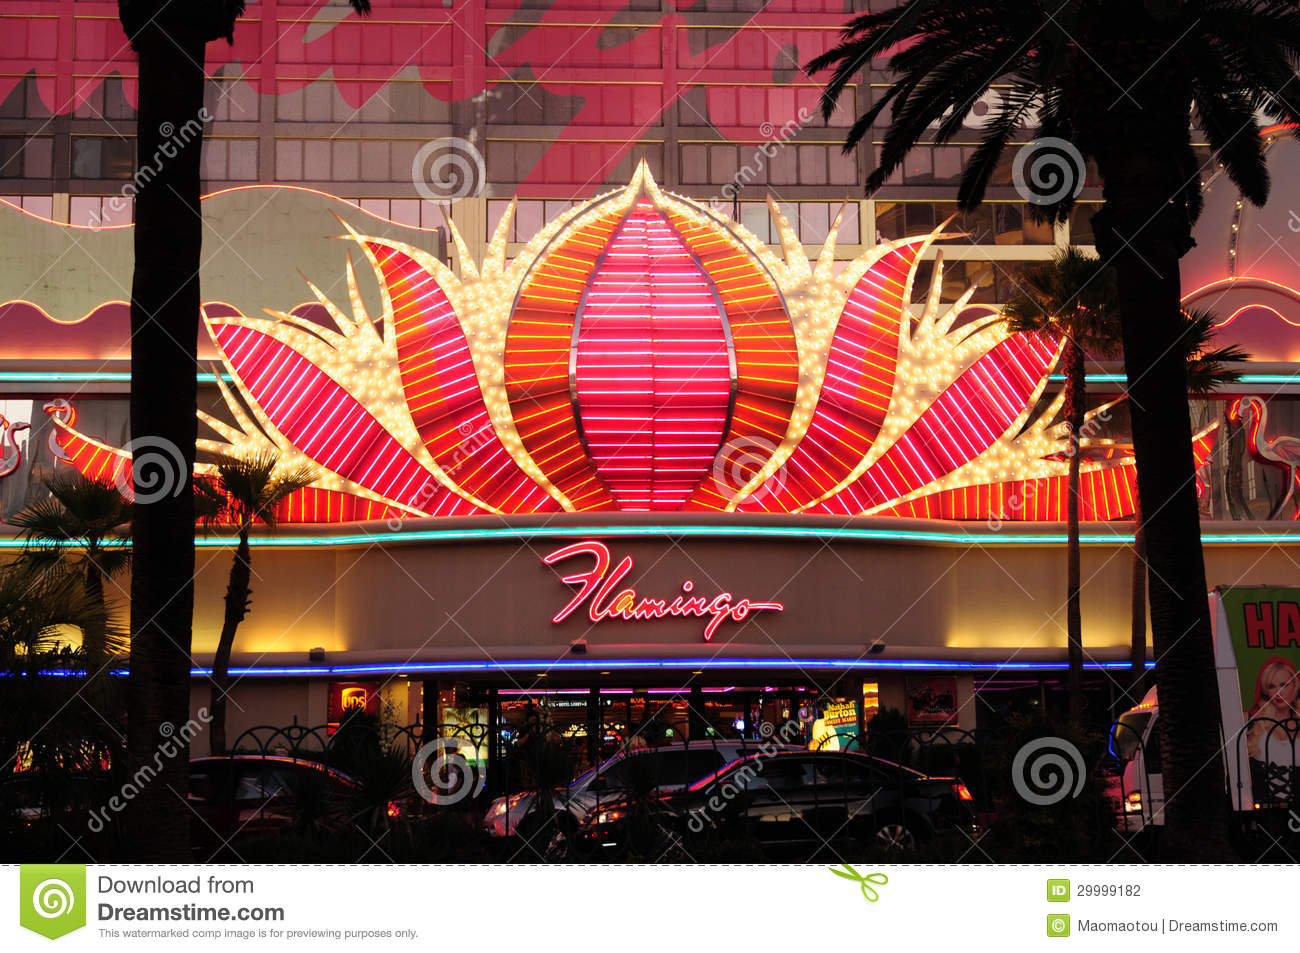 flamingo las vegas logo - photo #16